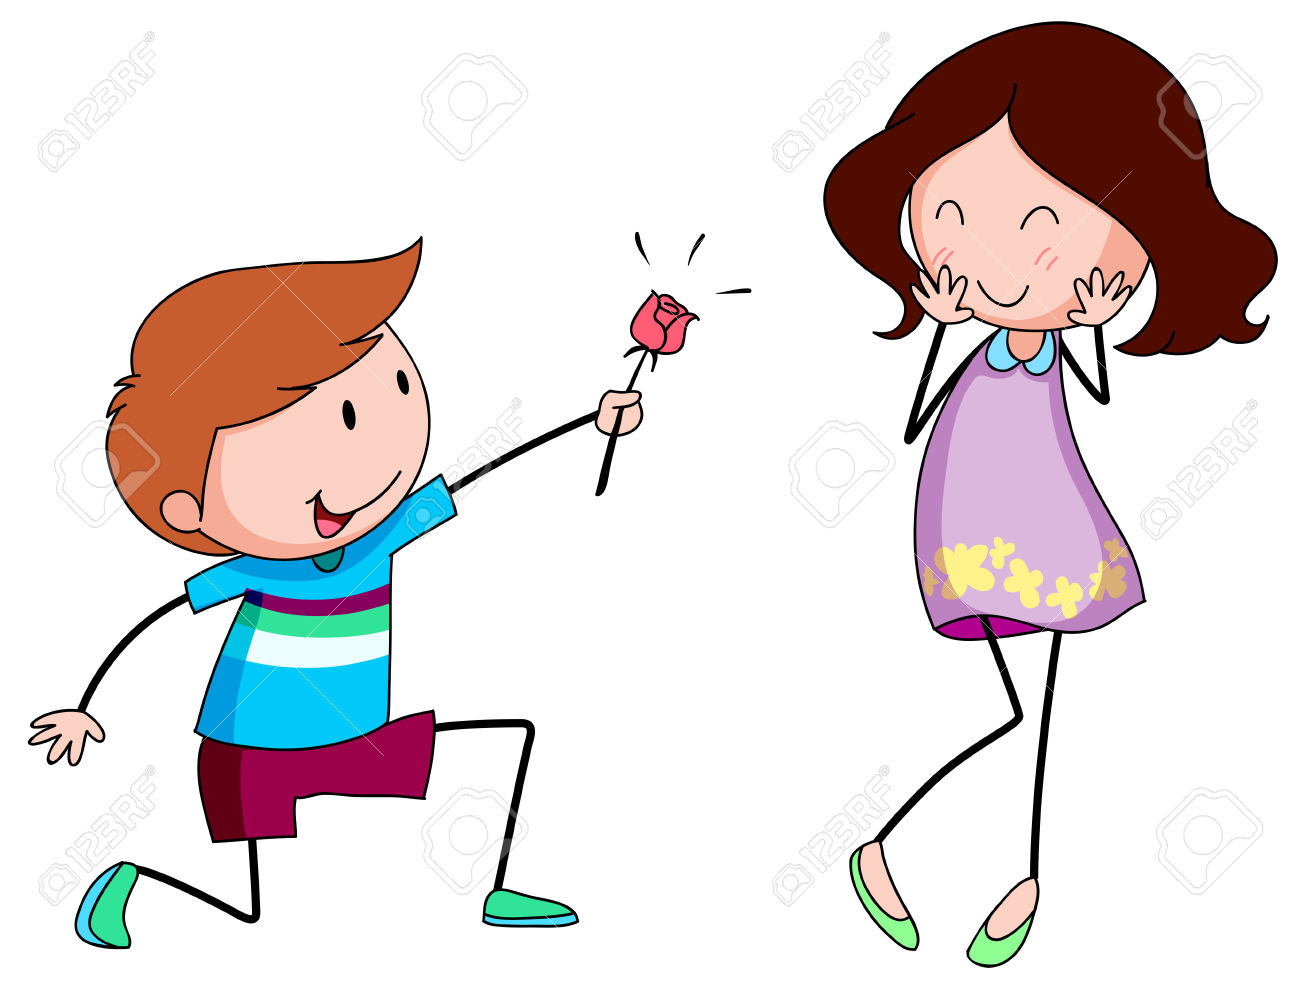 A boy giving a flower to a girl clipart banner library Romantic Boy Giving A Rose To His Girlfriend Royalty Free Cliparts ... banner library